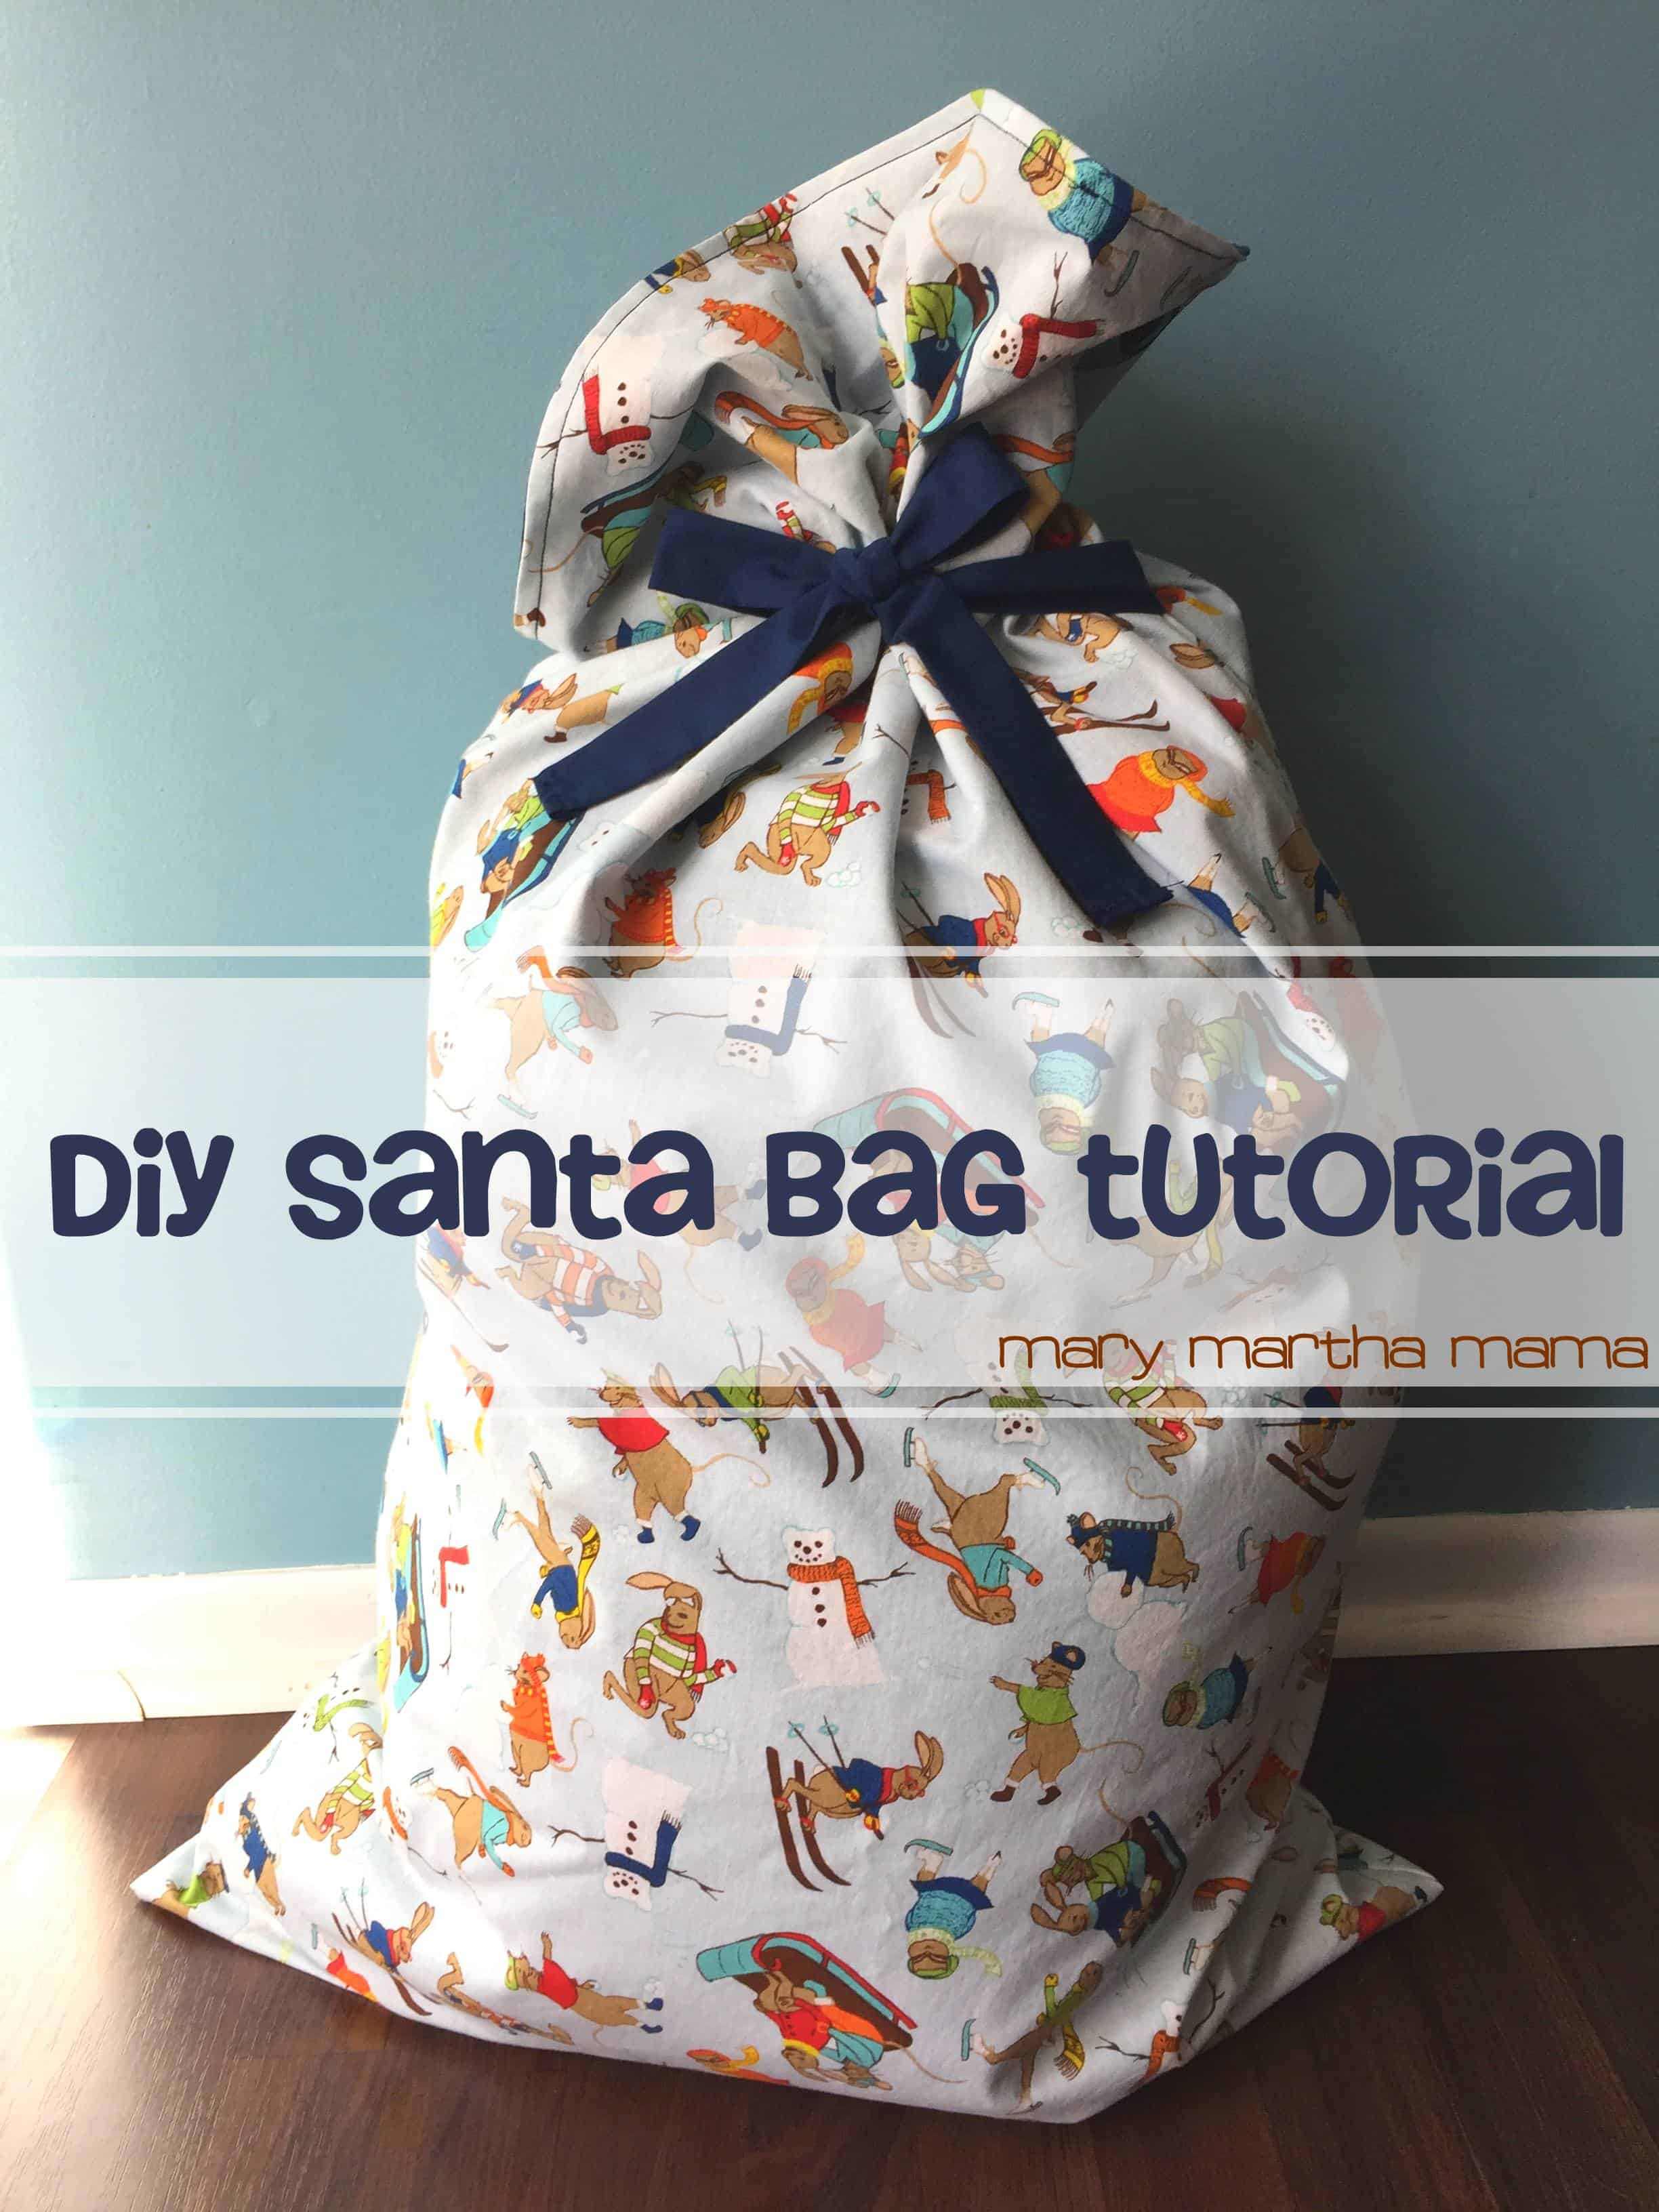 Santa Bag Tutorial Mary Martha Mama